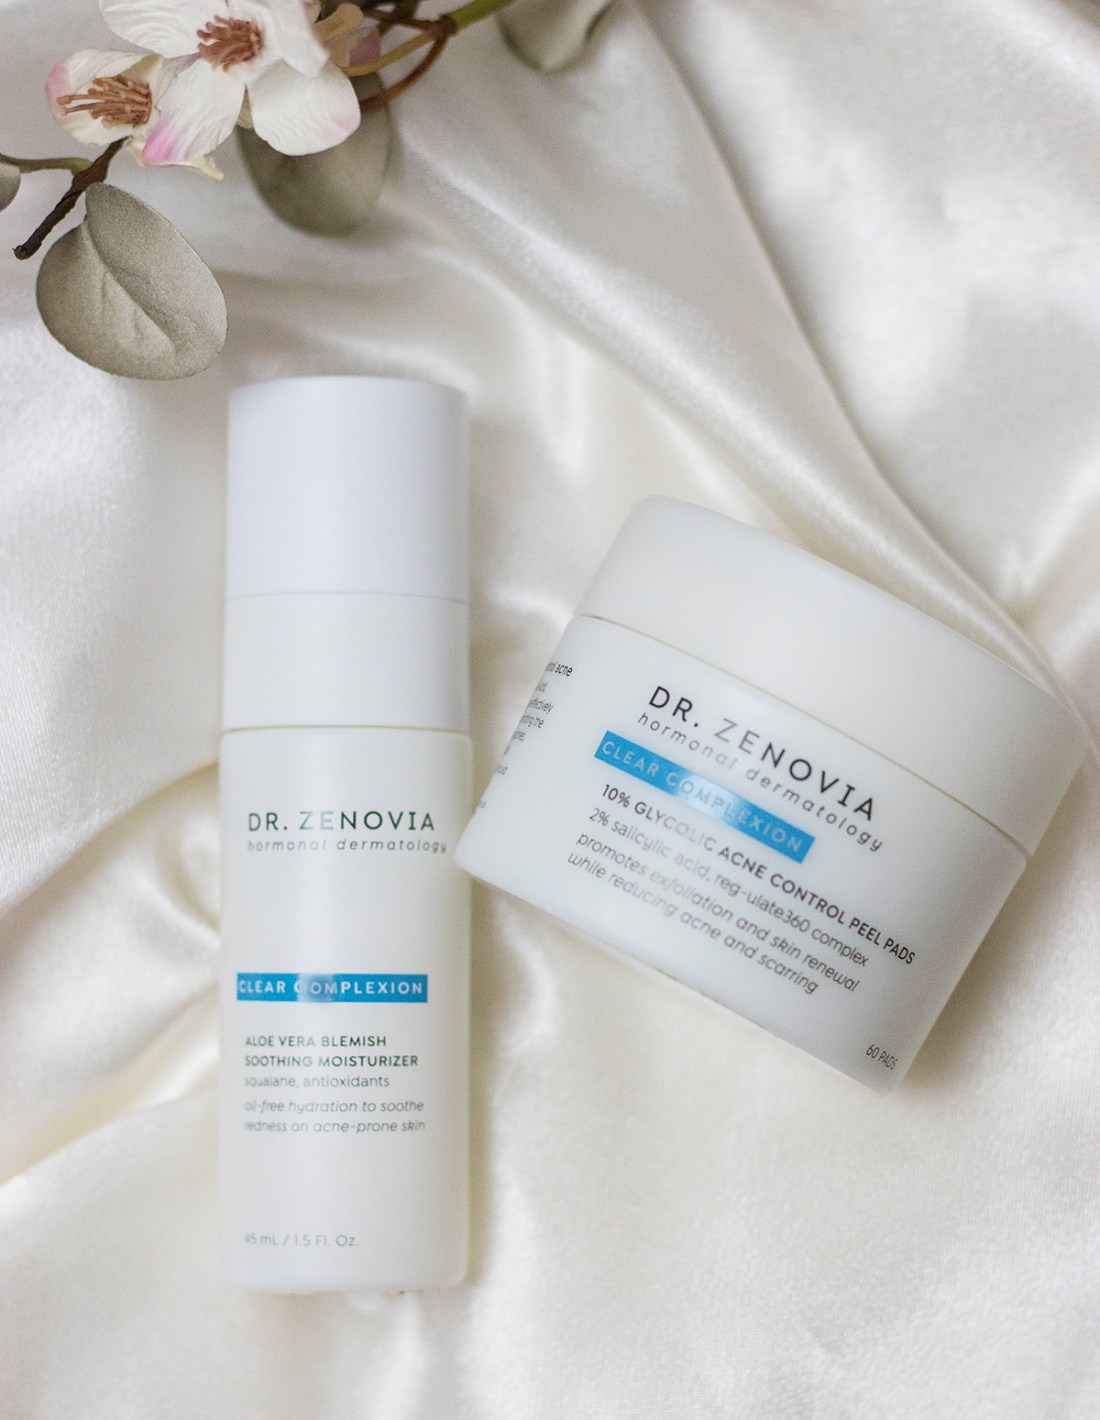 Review: Dr. Zenovia Clear Complexion Collection | A Good Hue